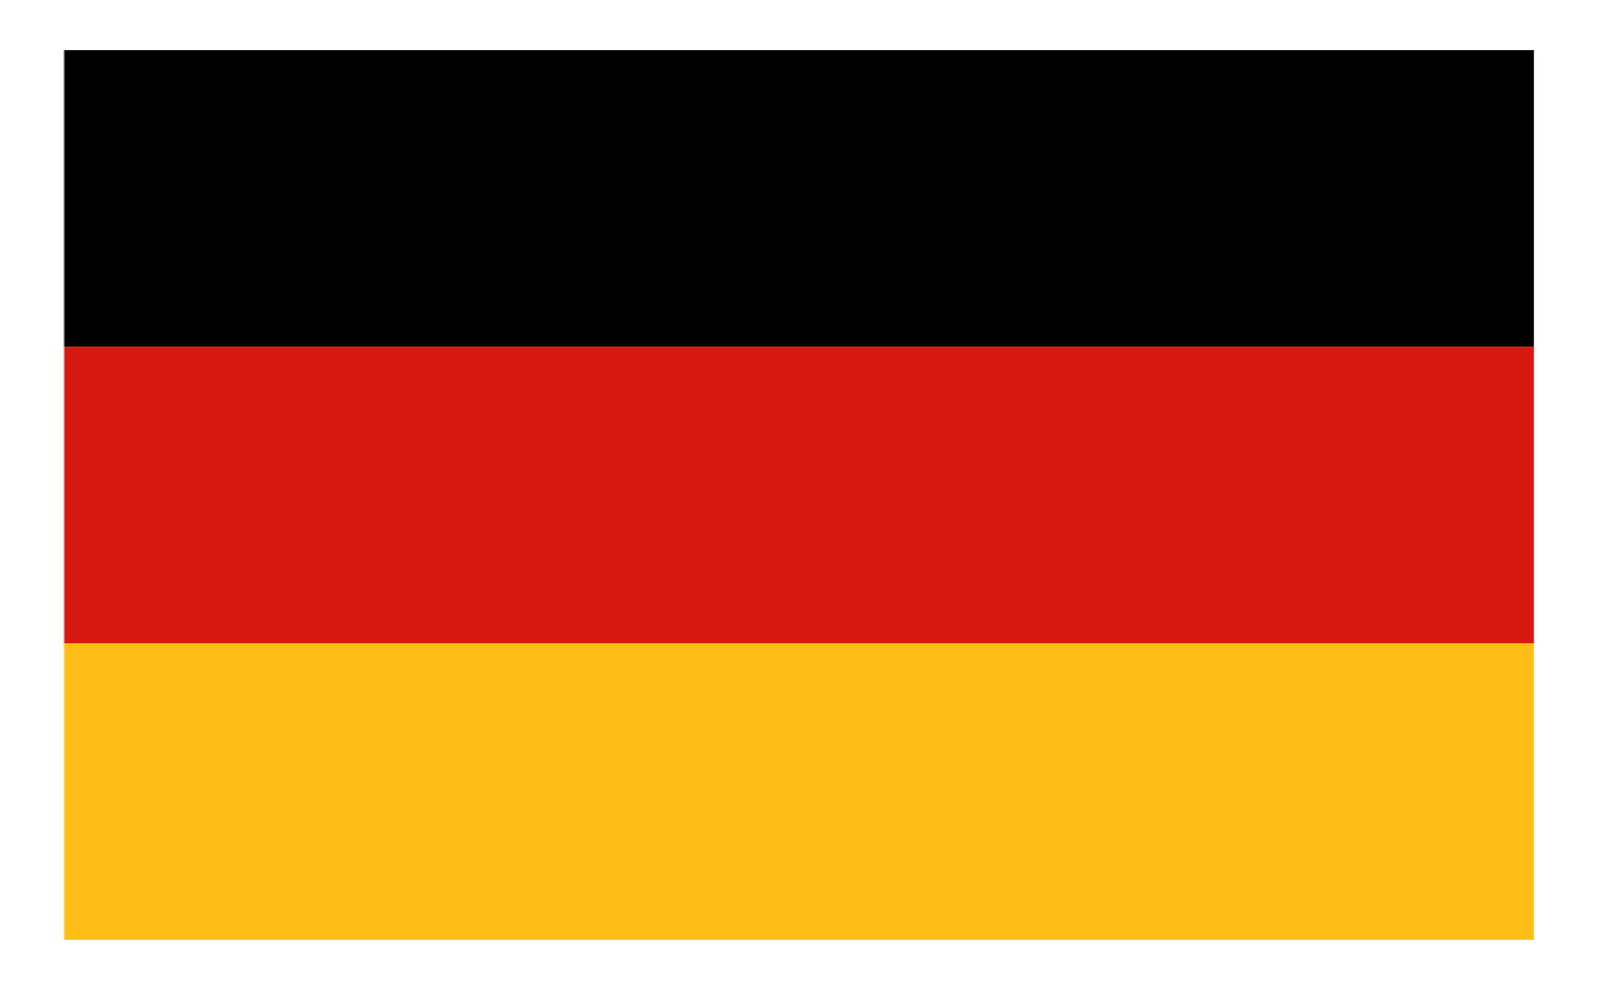 German, deutsch, flag colors